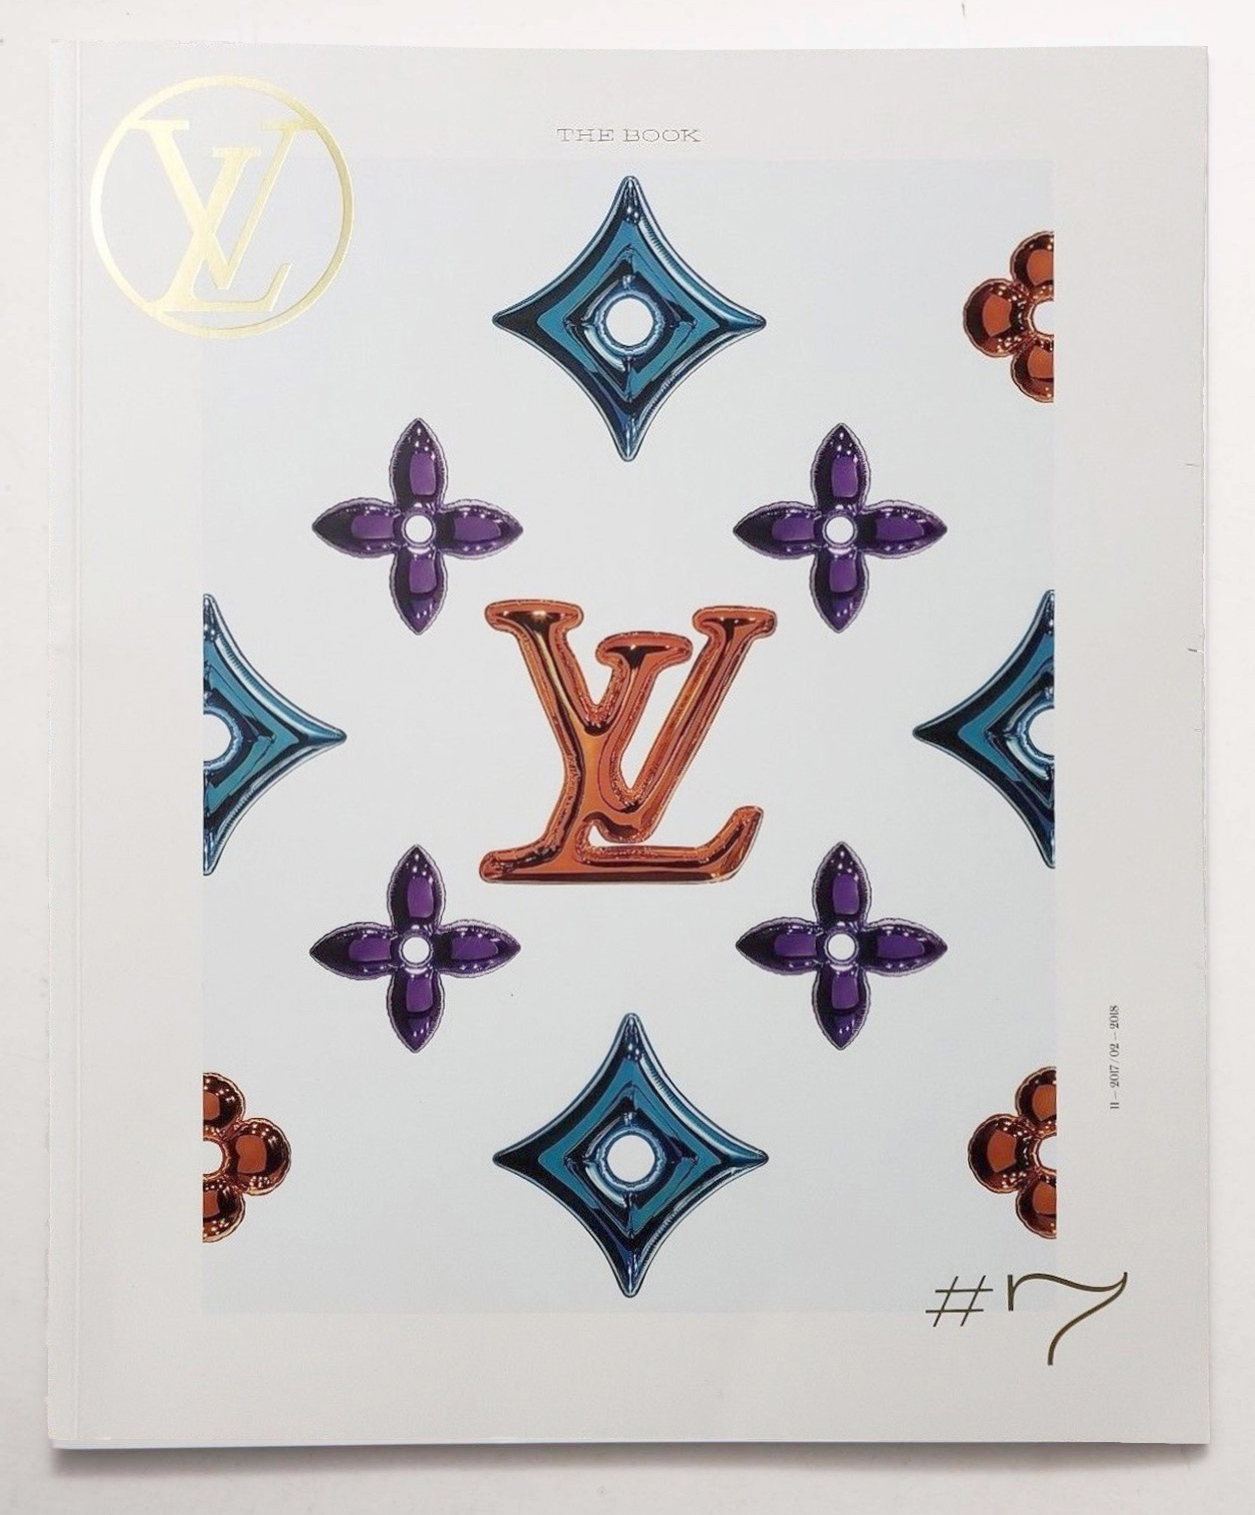 Louis Vuitton Paris The Book #8 Magazine Quarterly Season Fashion Catalog Pret a Porter Ready to Wear RTW Cover Accessories Catalog Maroquinerie Men Women Cover Nicolas Ghesquière Printemps Ete Spring Summer 2018 Place Vendome Gilded Sun